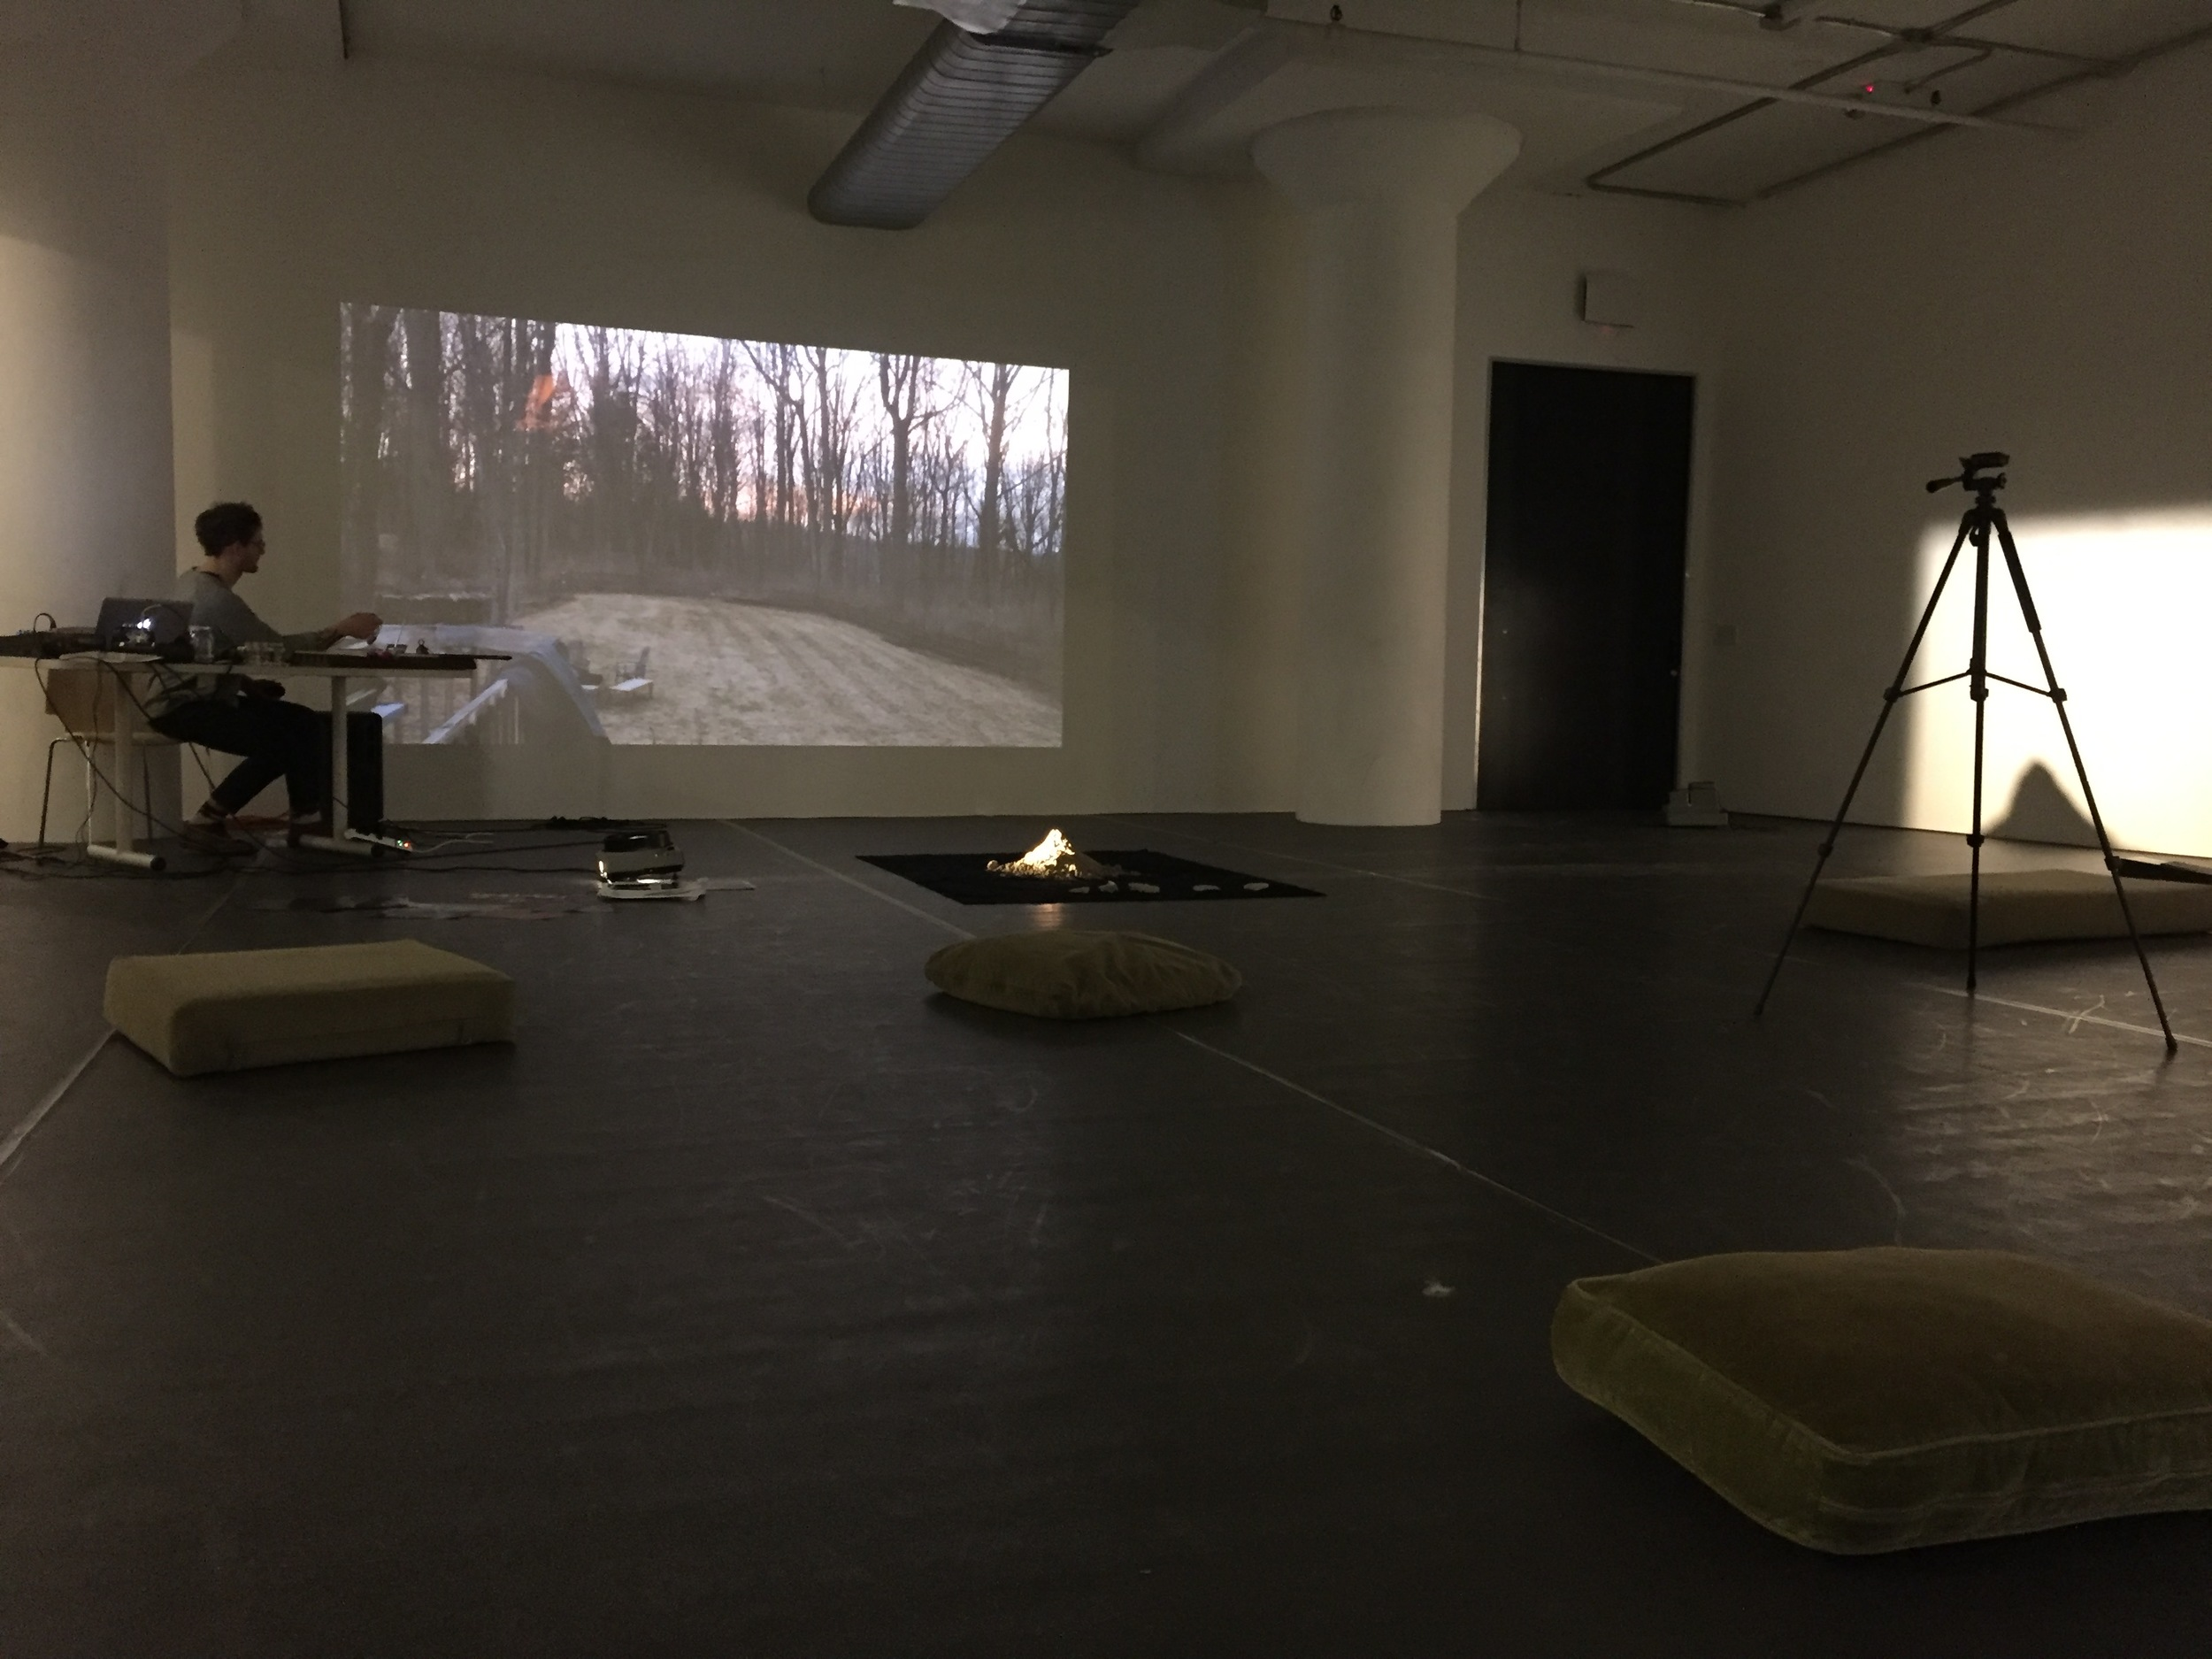 Ryan Packard performing  II. resonant titles on light / seascapes   too colors tones resonances / use of particulars Maine